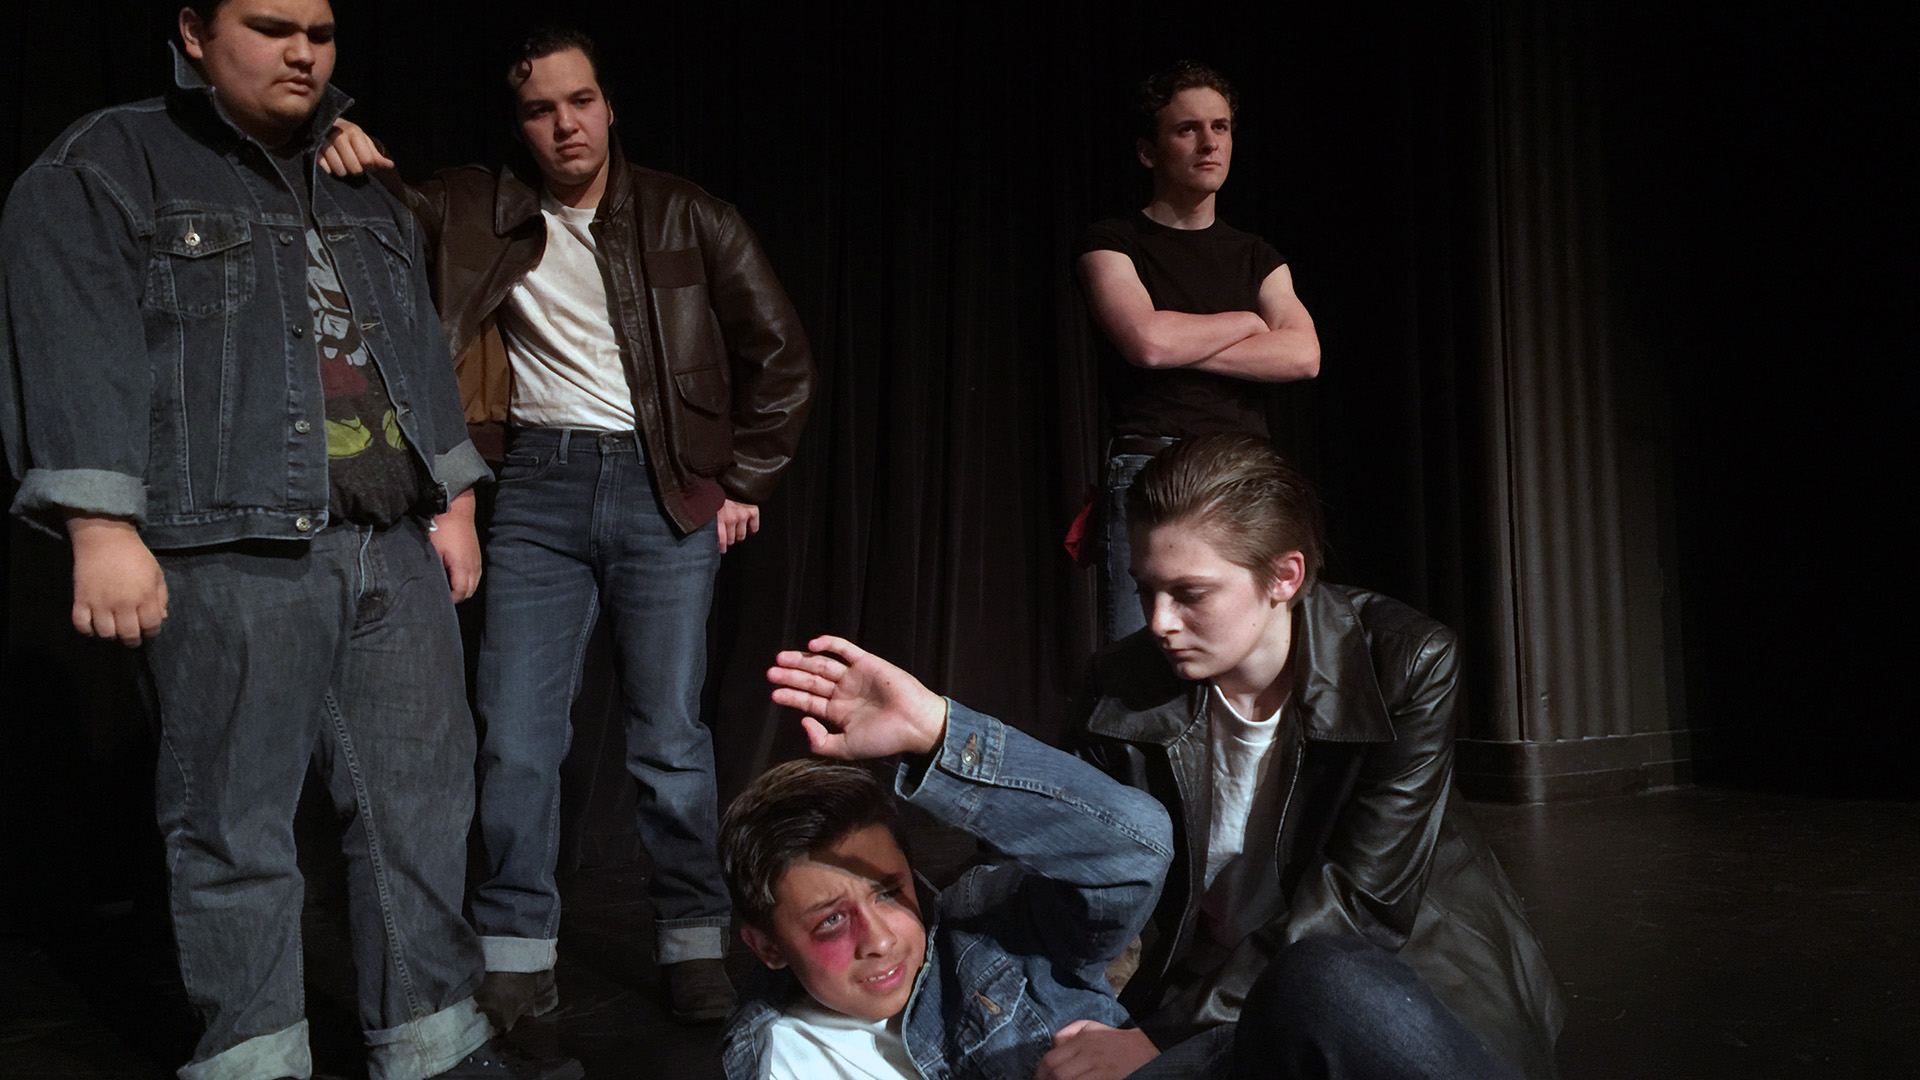 AC Conservatory students 'stay gold' in 'Outsiders' stage play